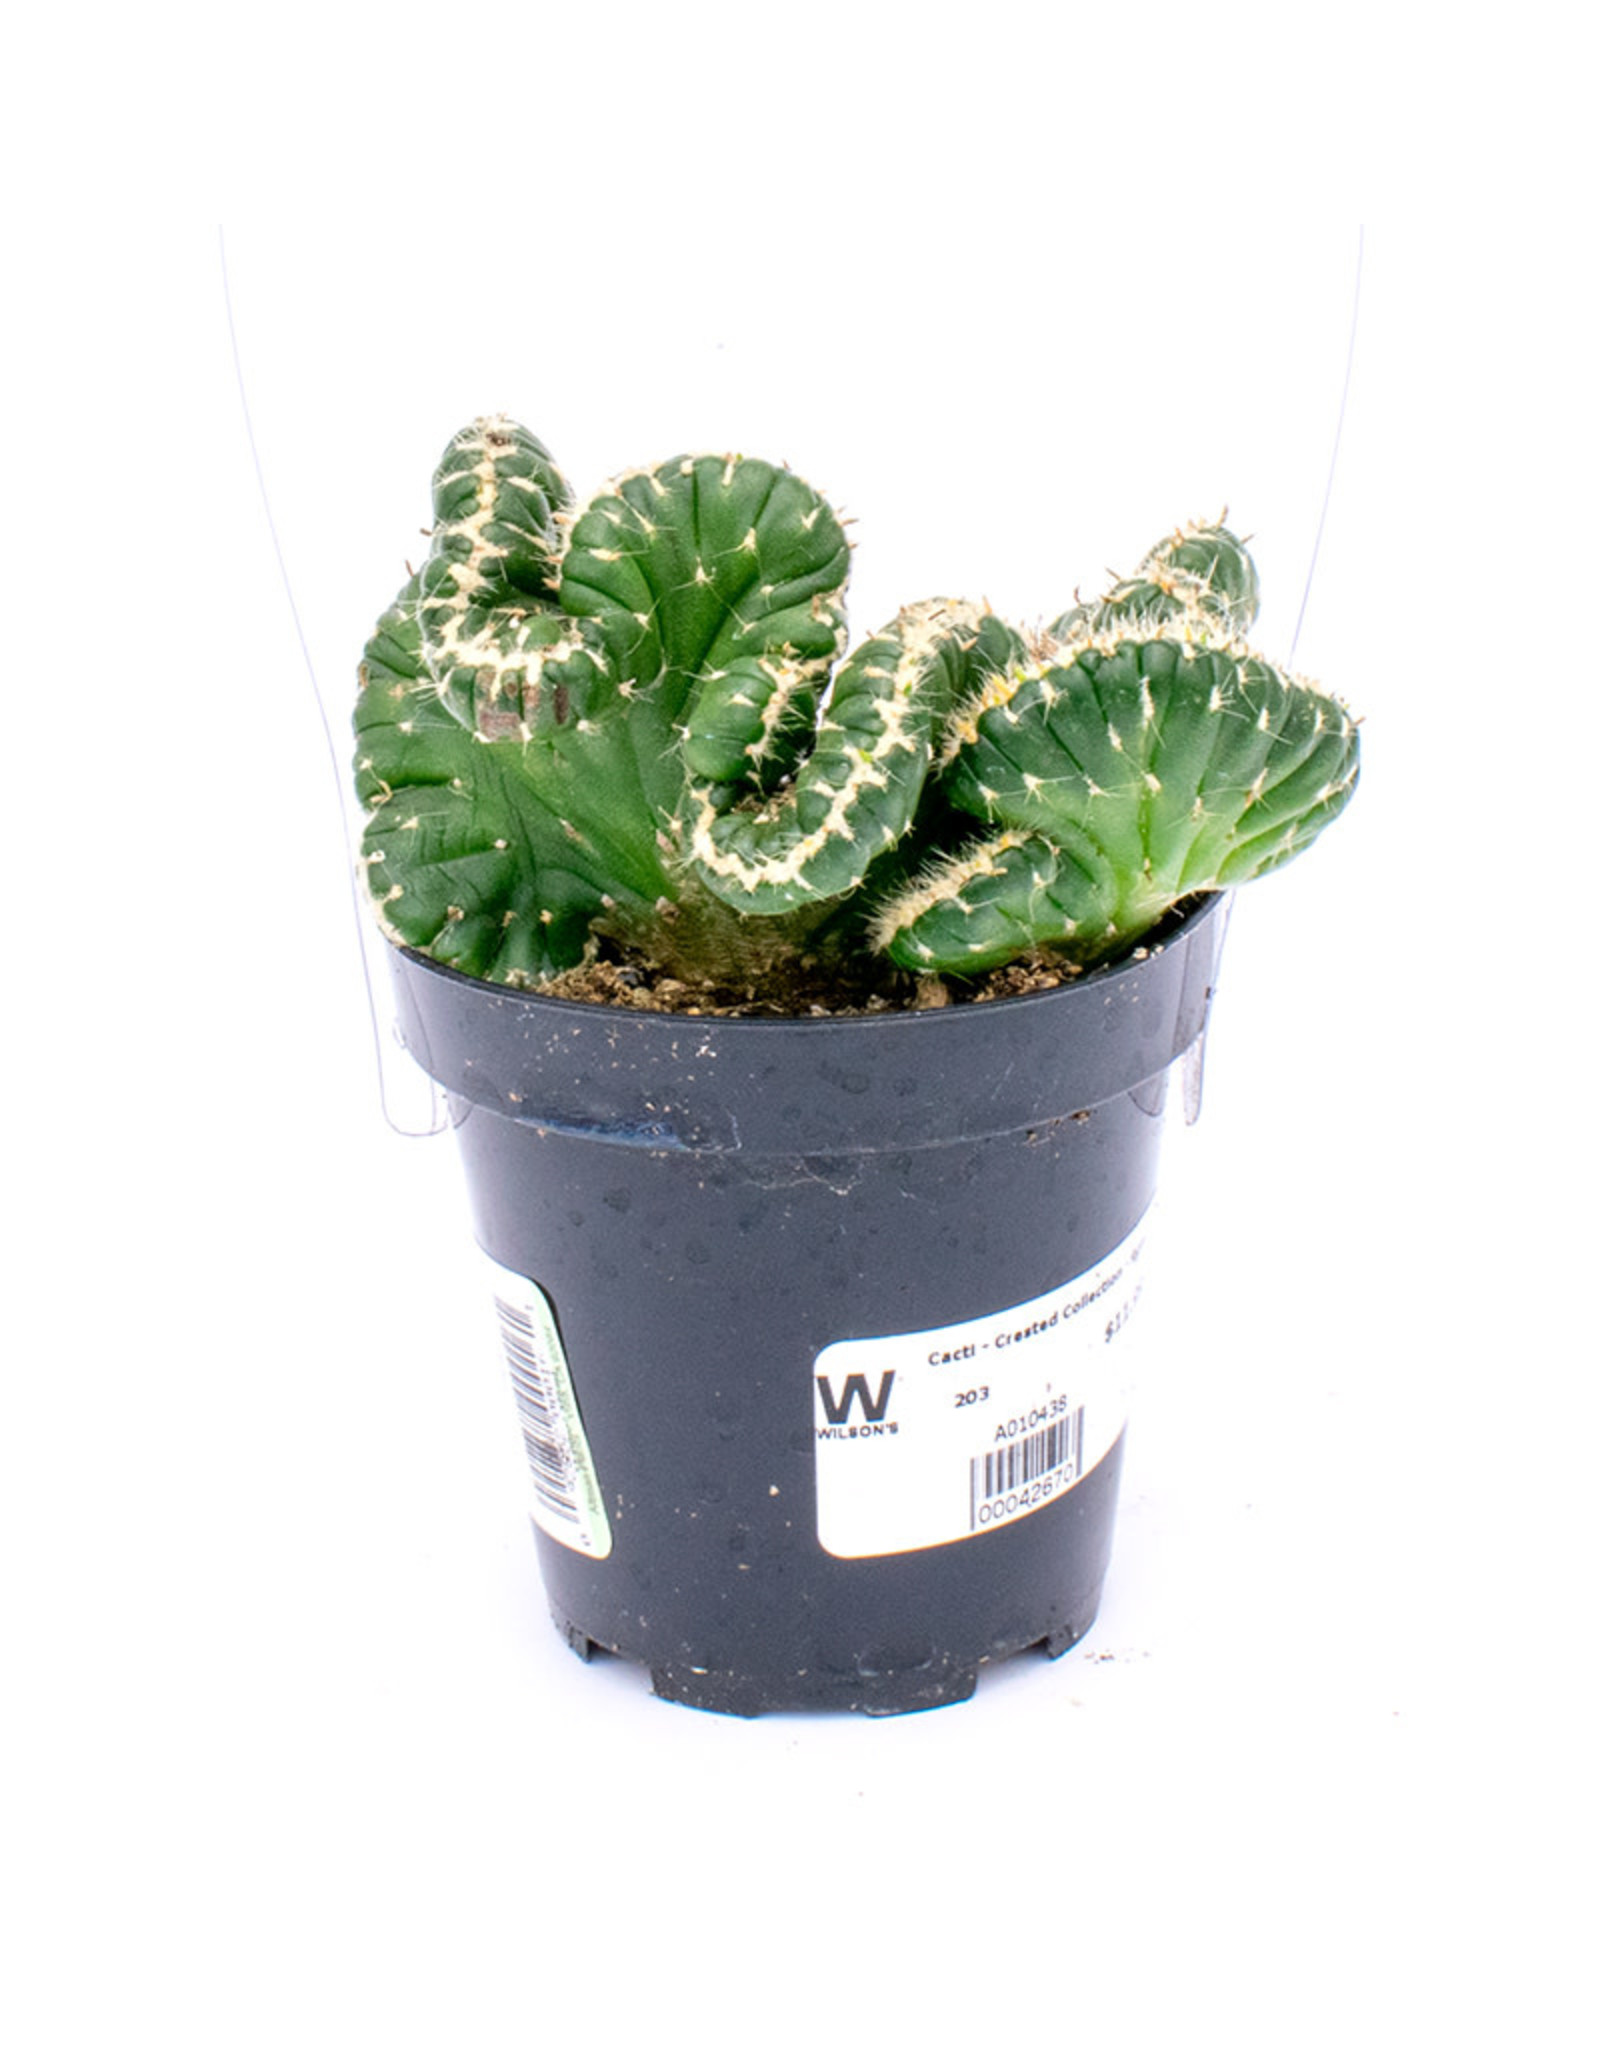 Cacti - Crested Collection - 9cm A010438